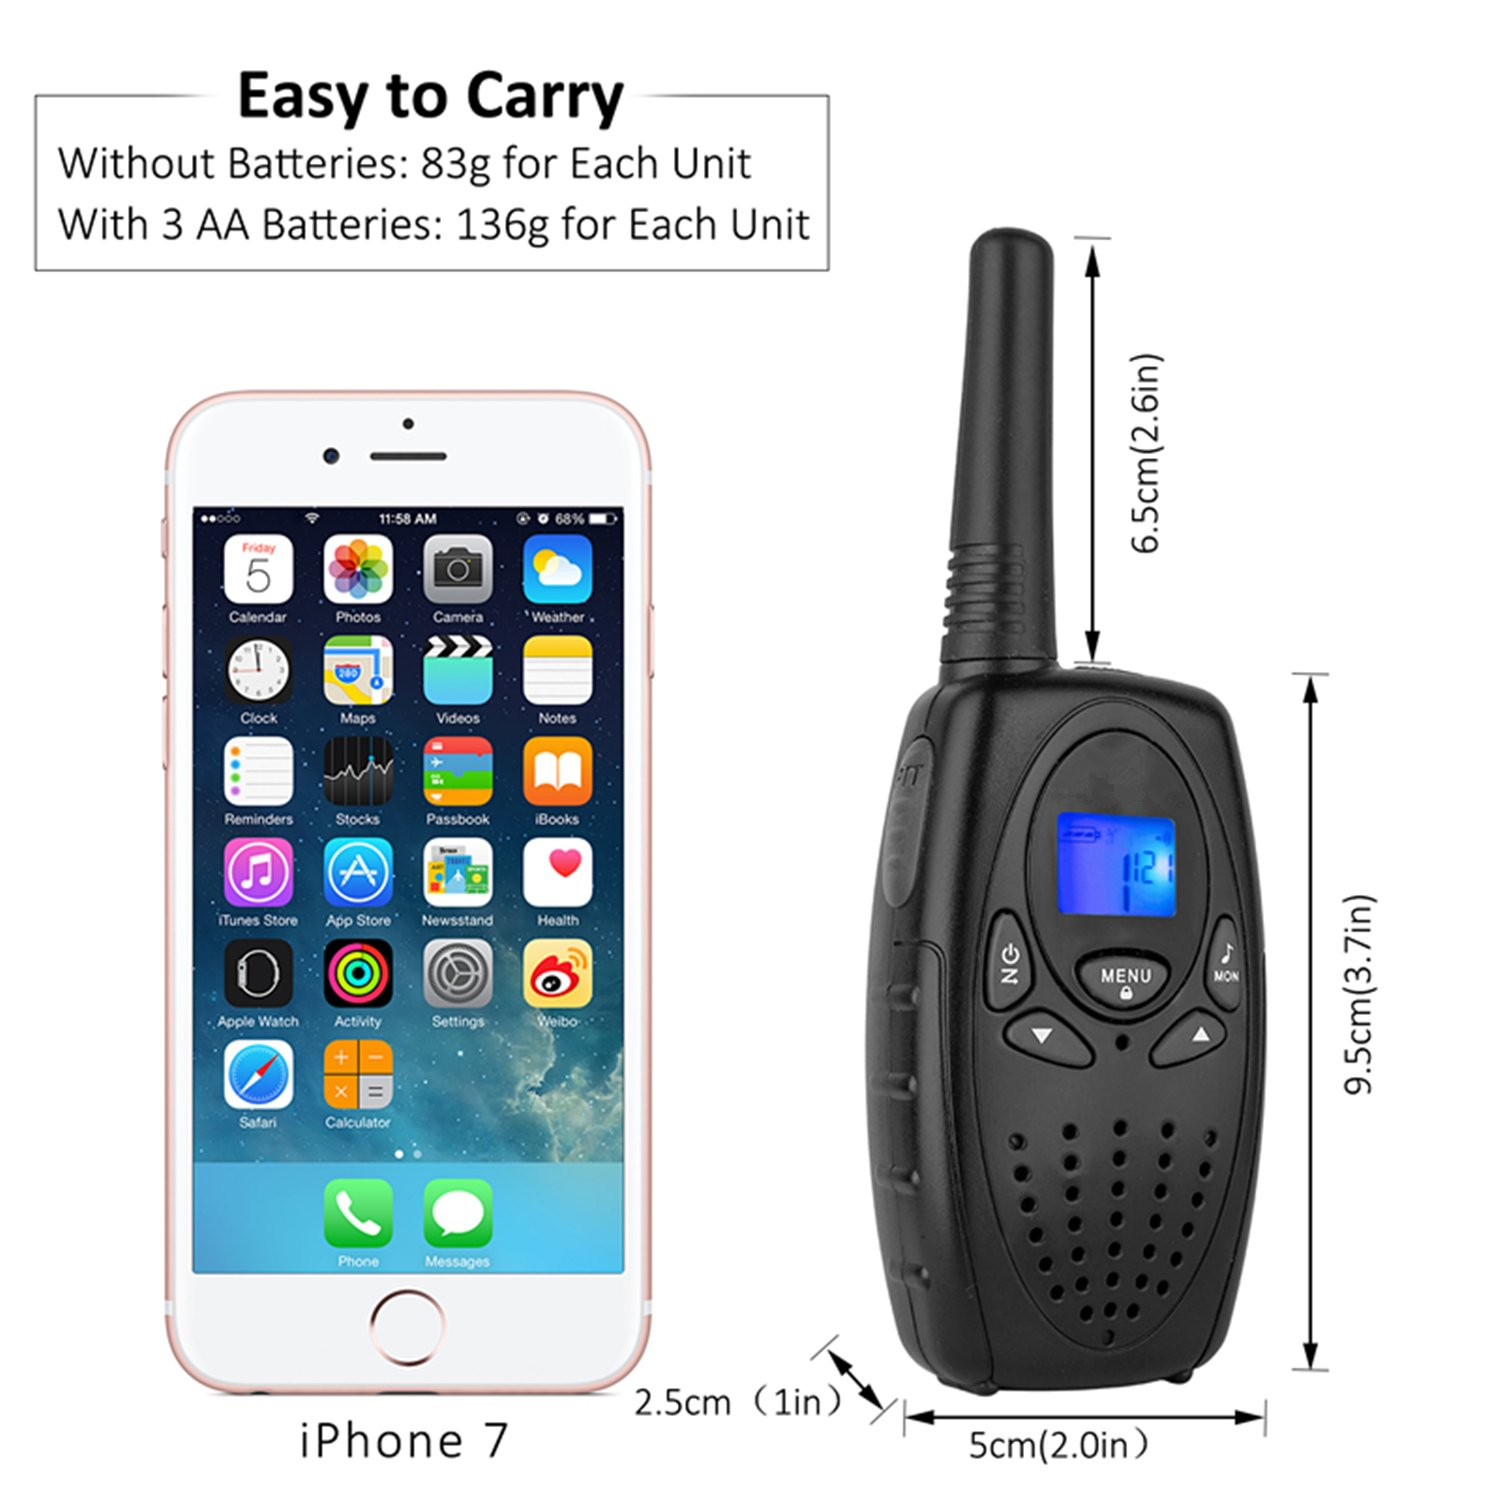 Walkie Talkies for Adults, Topsung M880 FRS Two Way Radio Long Range with VOX Belt Clip/Hand Held Walky Talky with 22 Channel 3 Mile for Family Home Cruise Ship Camping Hiking (Black 2 in 1) by Topsung (Image #4)